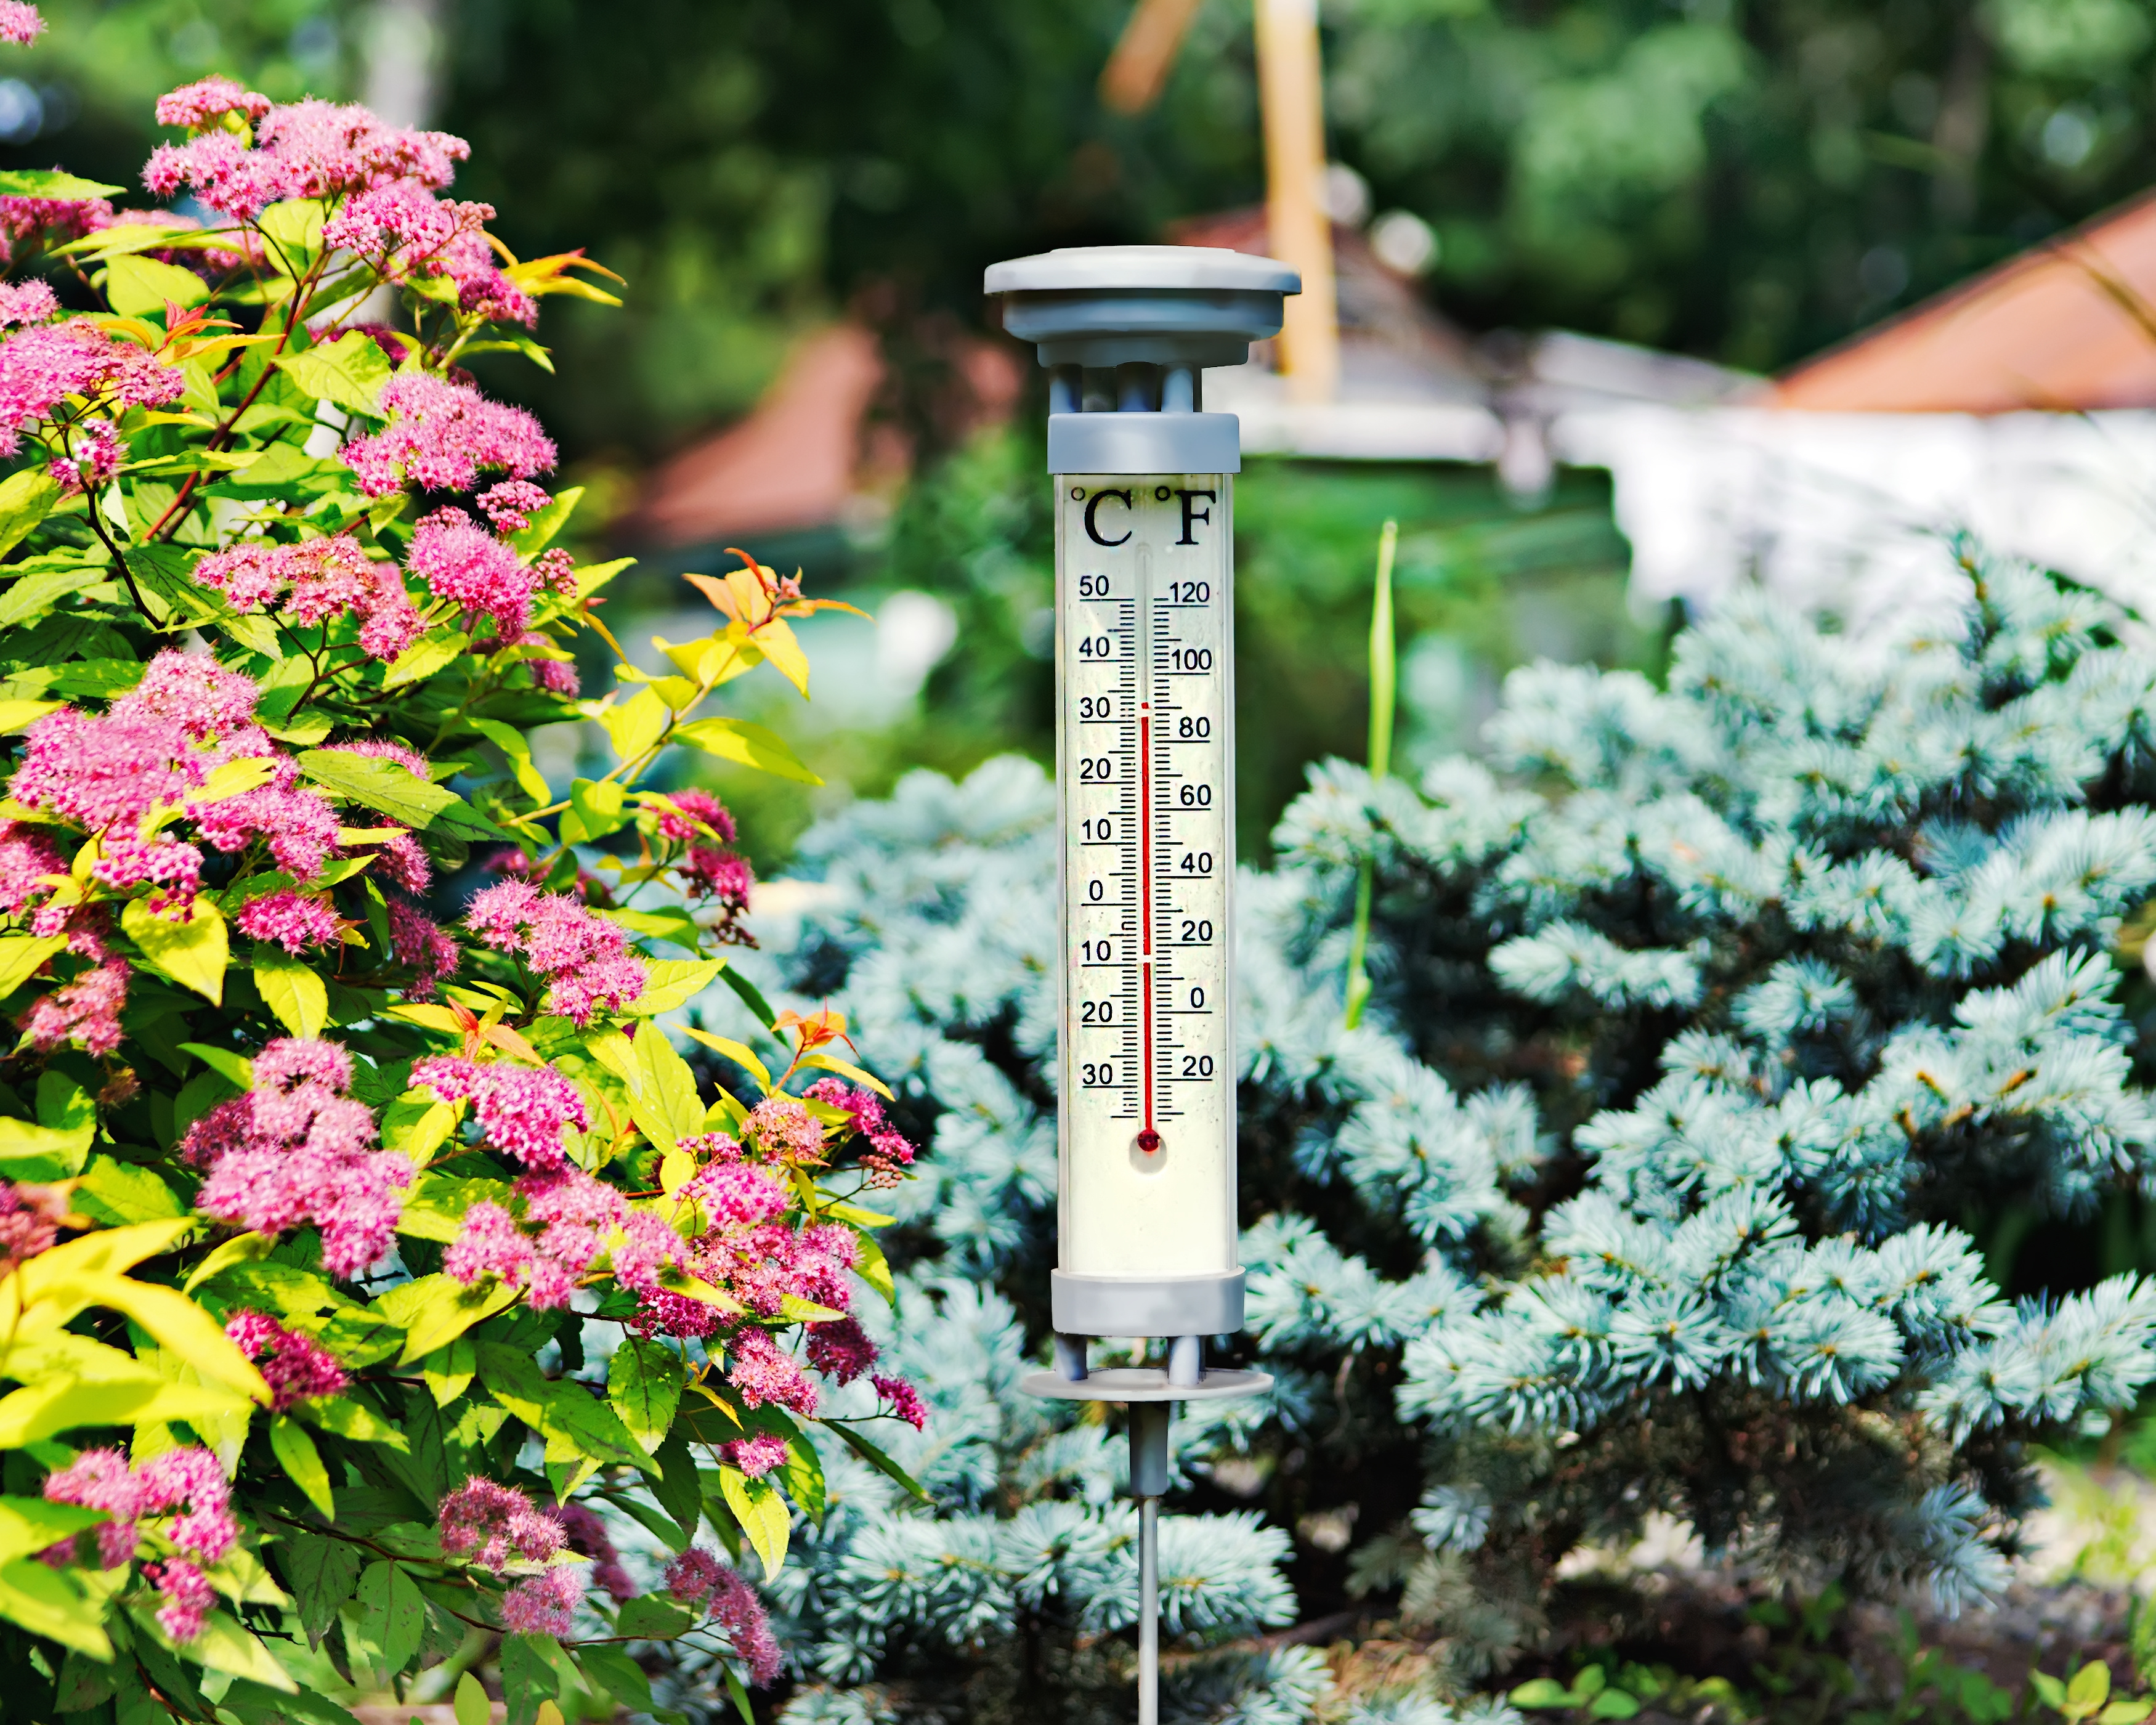 A temperature gauge stands in a colourful outdoor garden